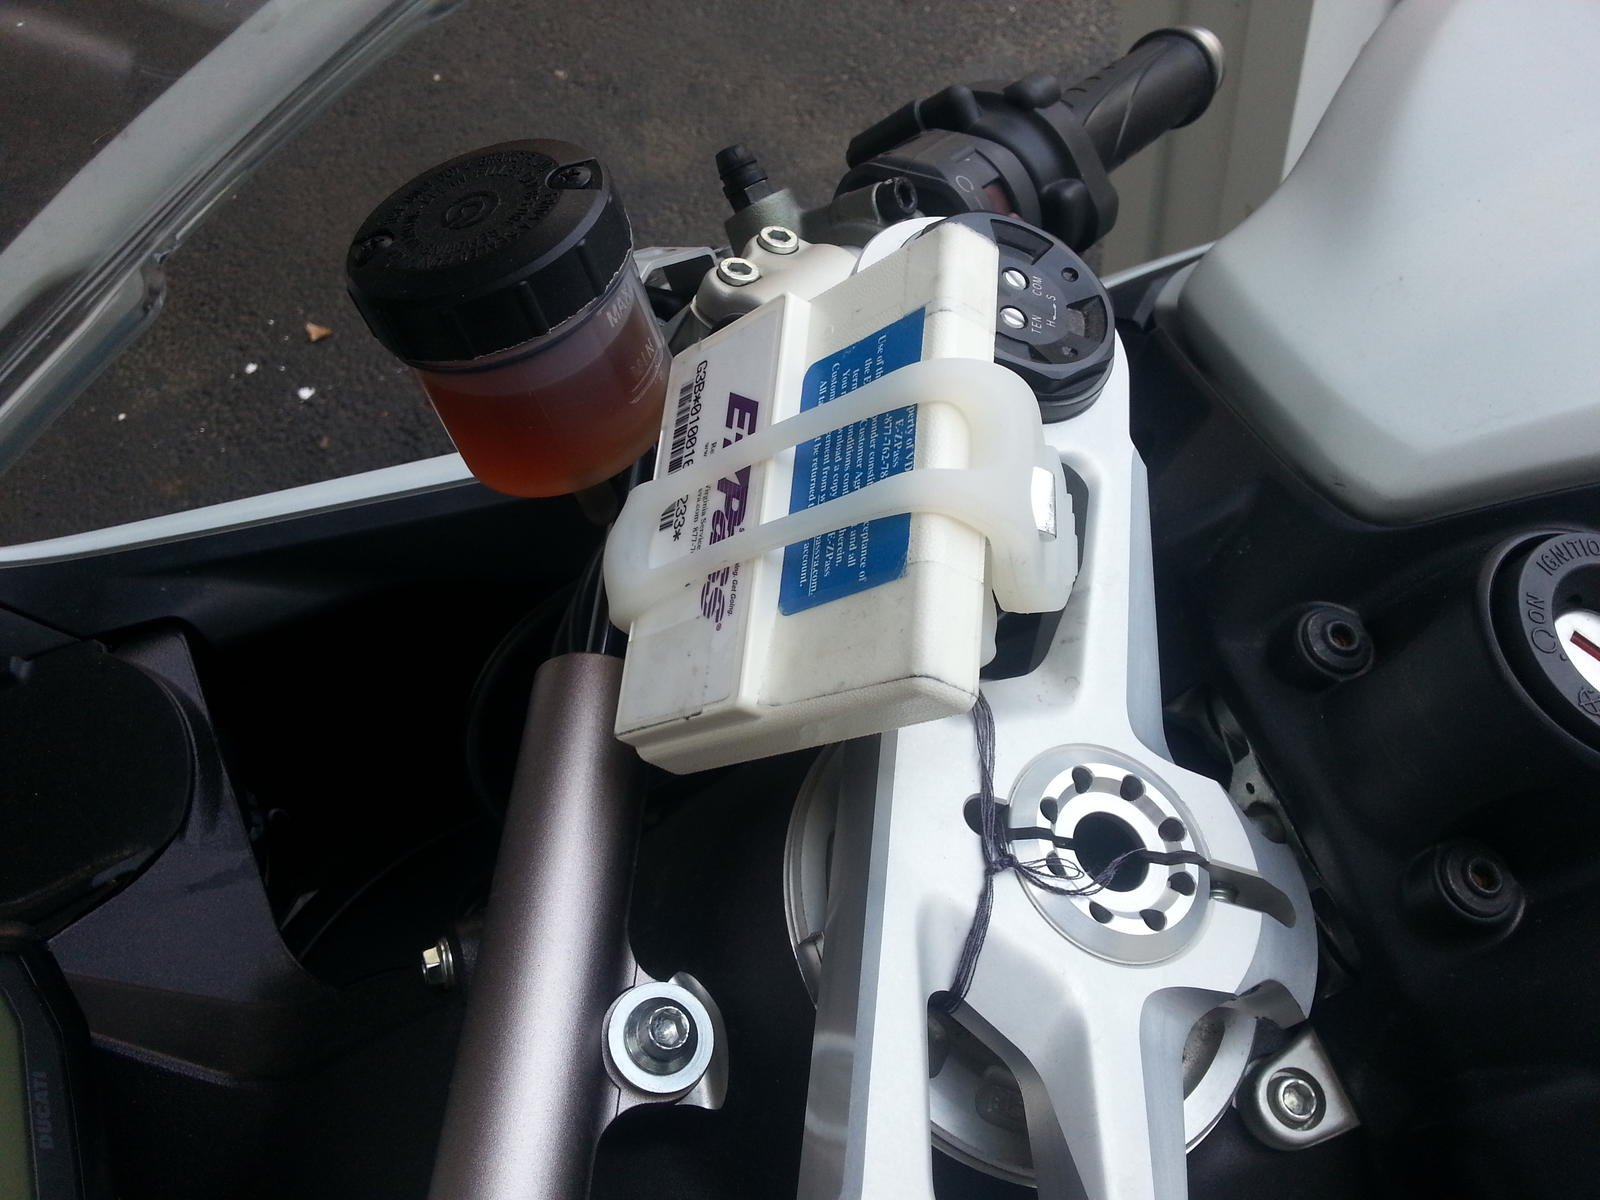 how to mount ez pass on motorcycle